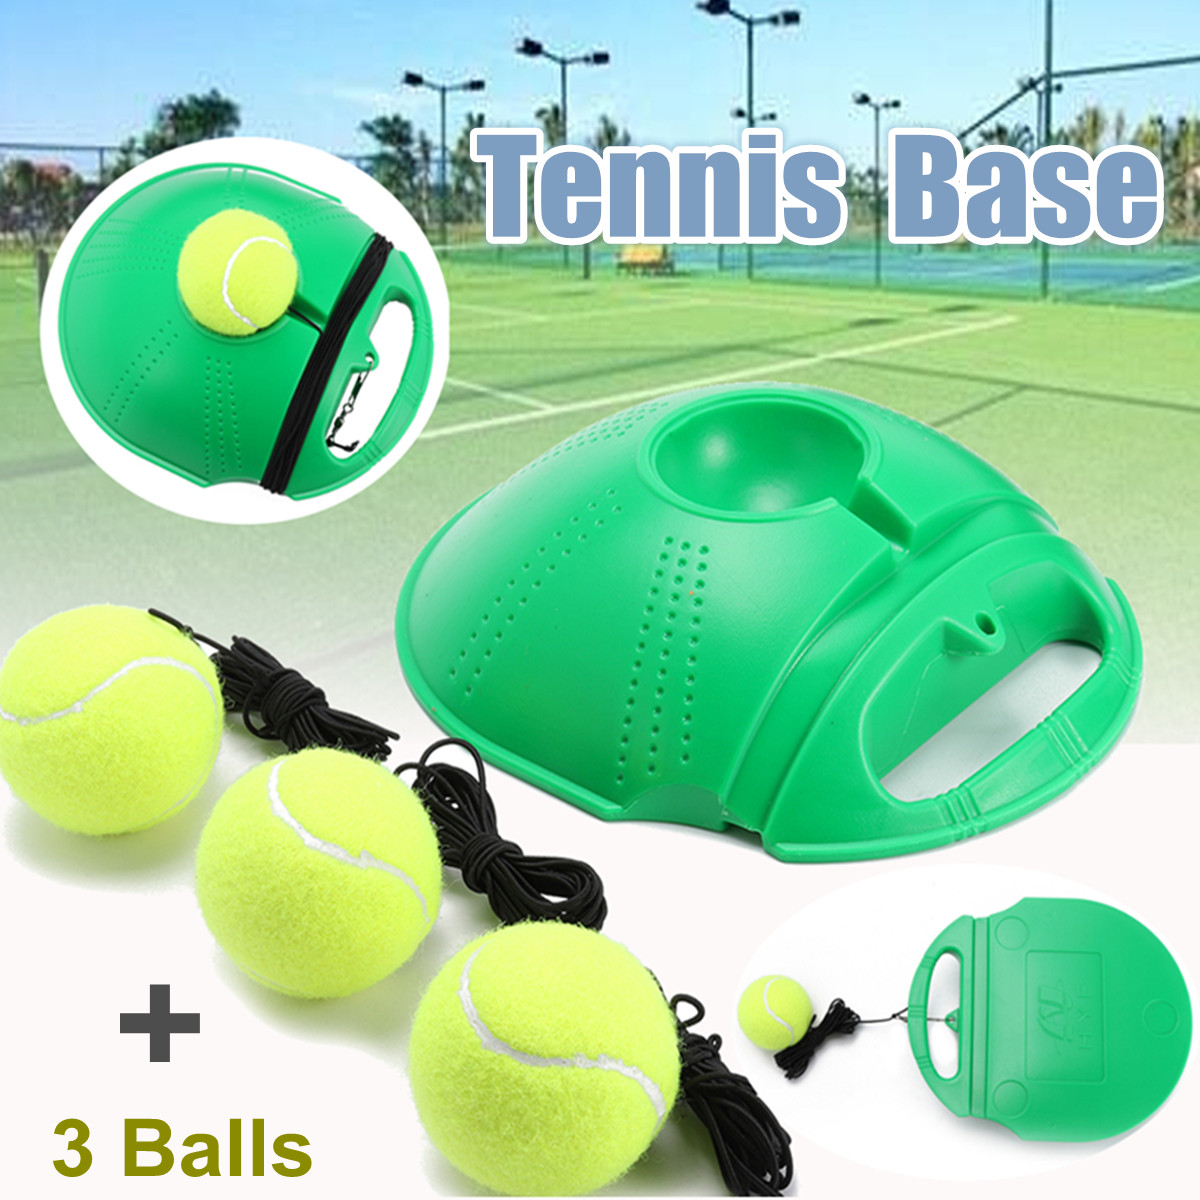 Tennis Trainer and Self-study Tennis Training Tool with Rebound Balls and Baseboard 1